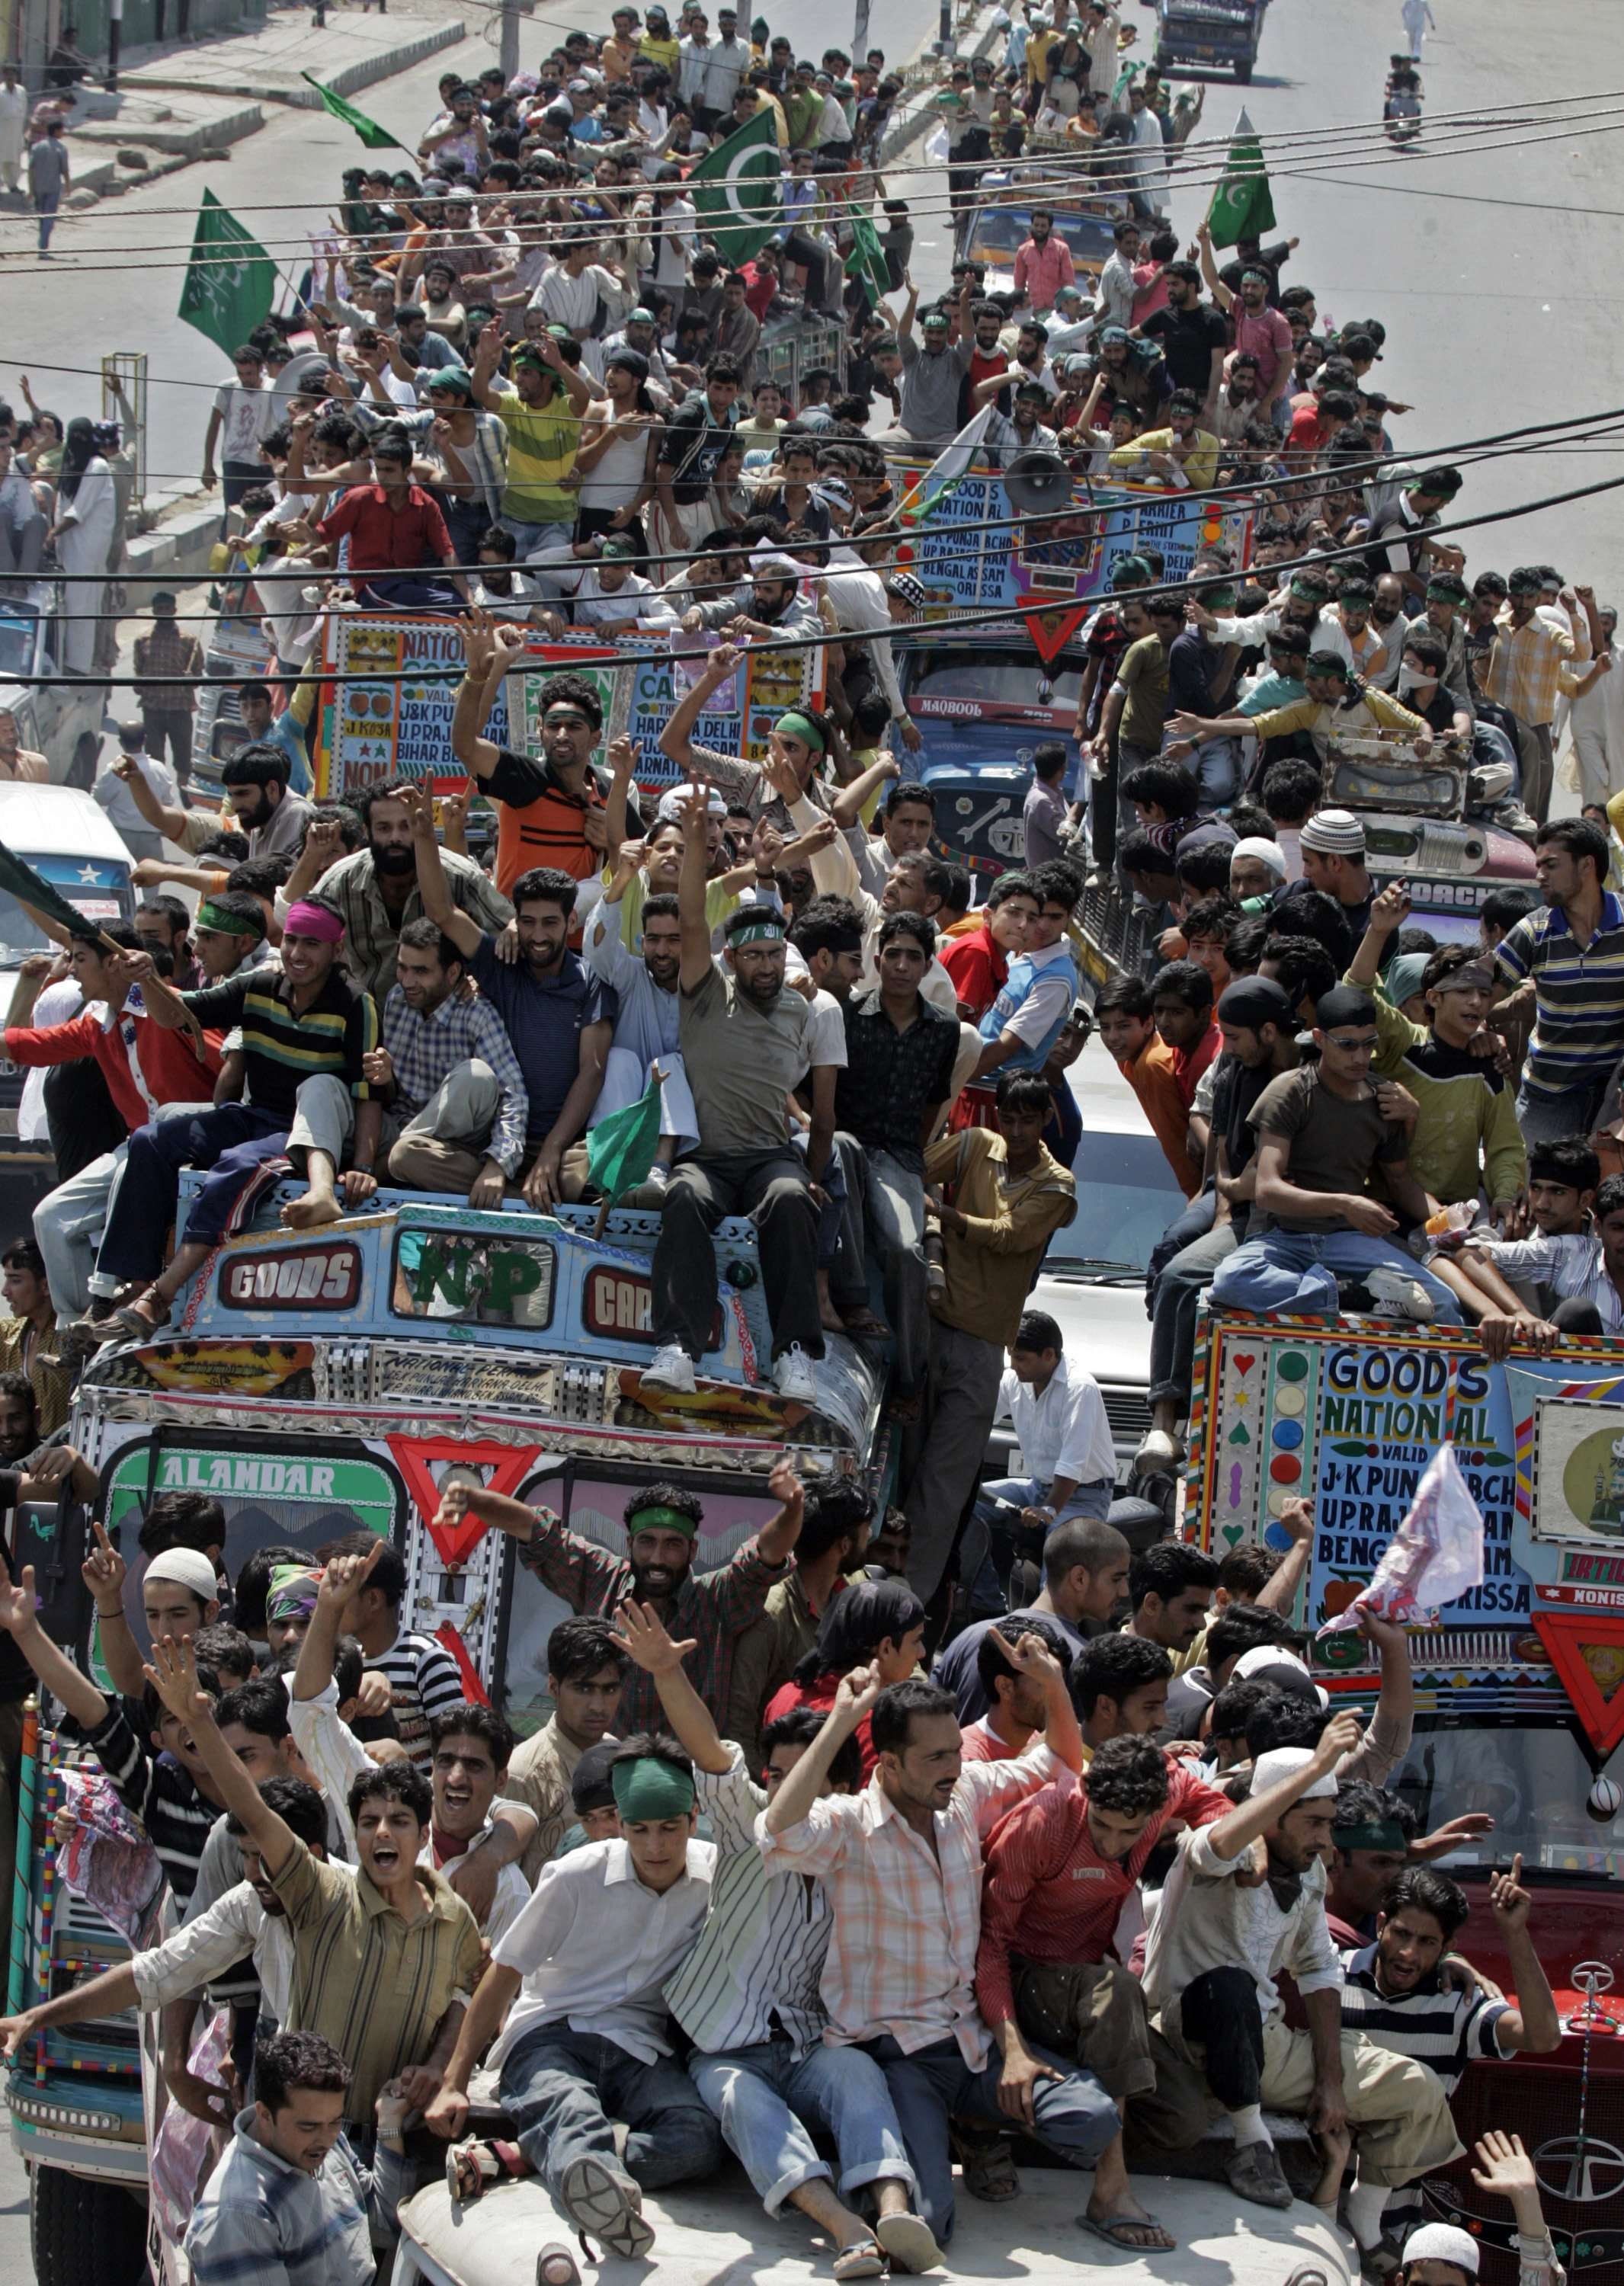 Kashmiri protesters on trucks shout pro-freedom slogans during a march to the Eidgah in Srinagar, India yesterday.